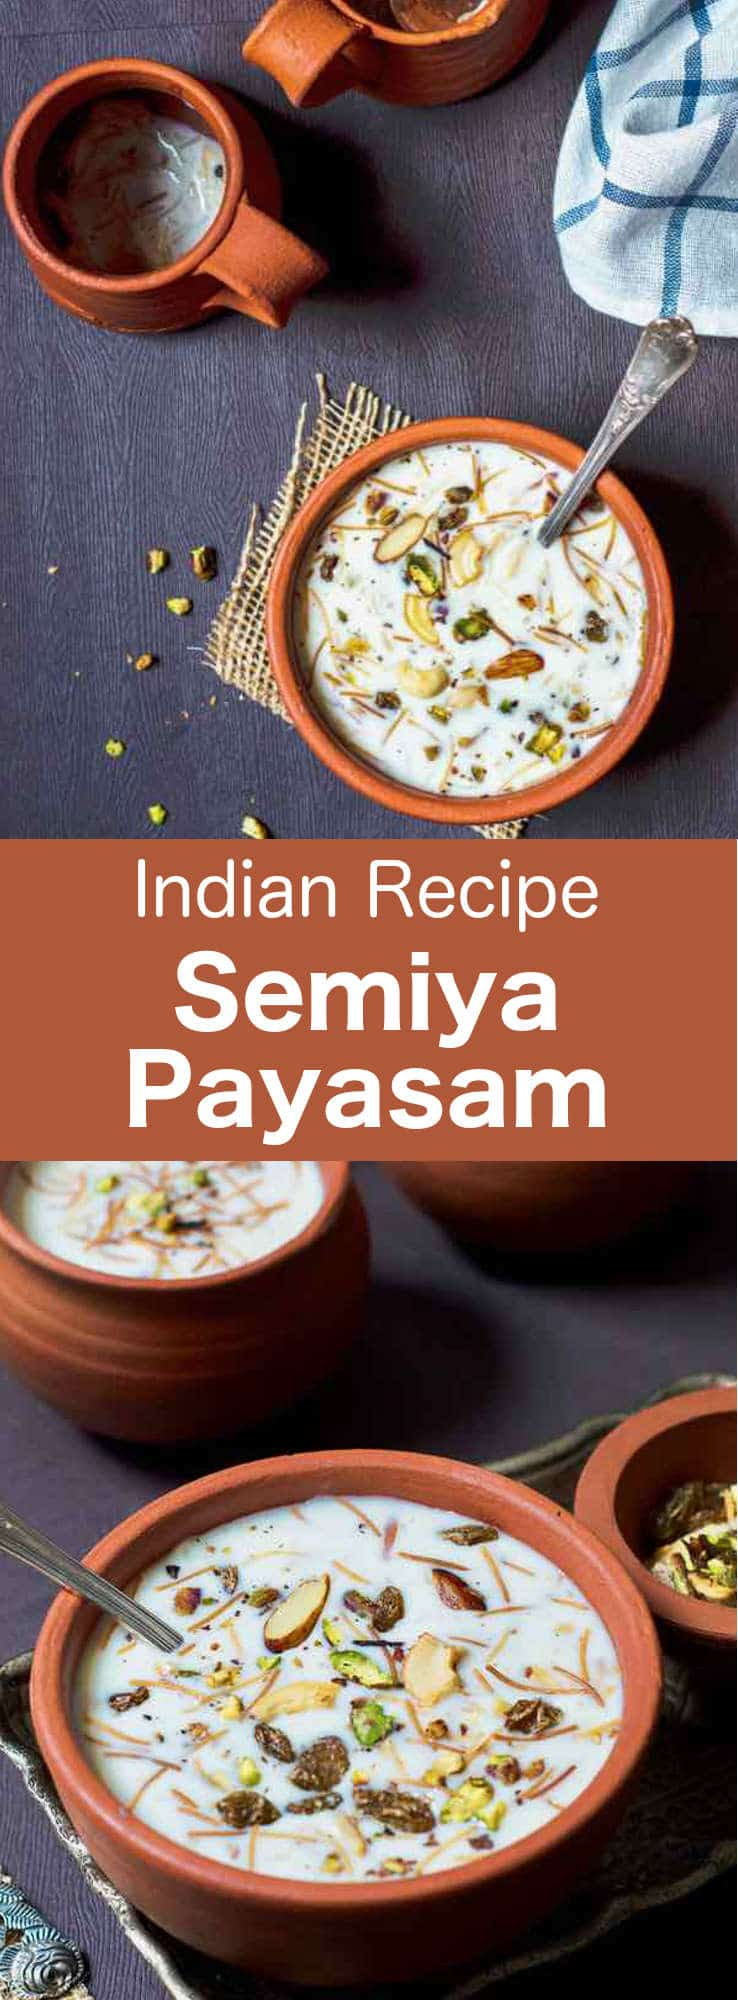 Semiya payasam is a traditional Indian dessert prepared with vermicelli cooked in milk and topped with cashews, raisins, almonds and pistachios. #India #IndianCuisine #dessert #196flavors